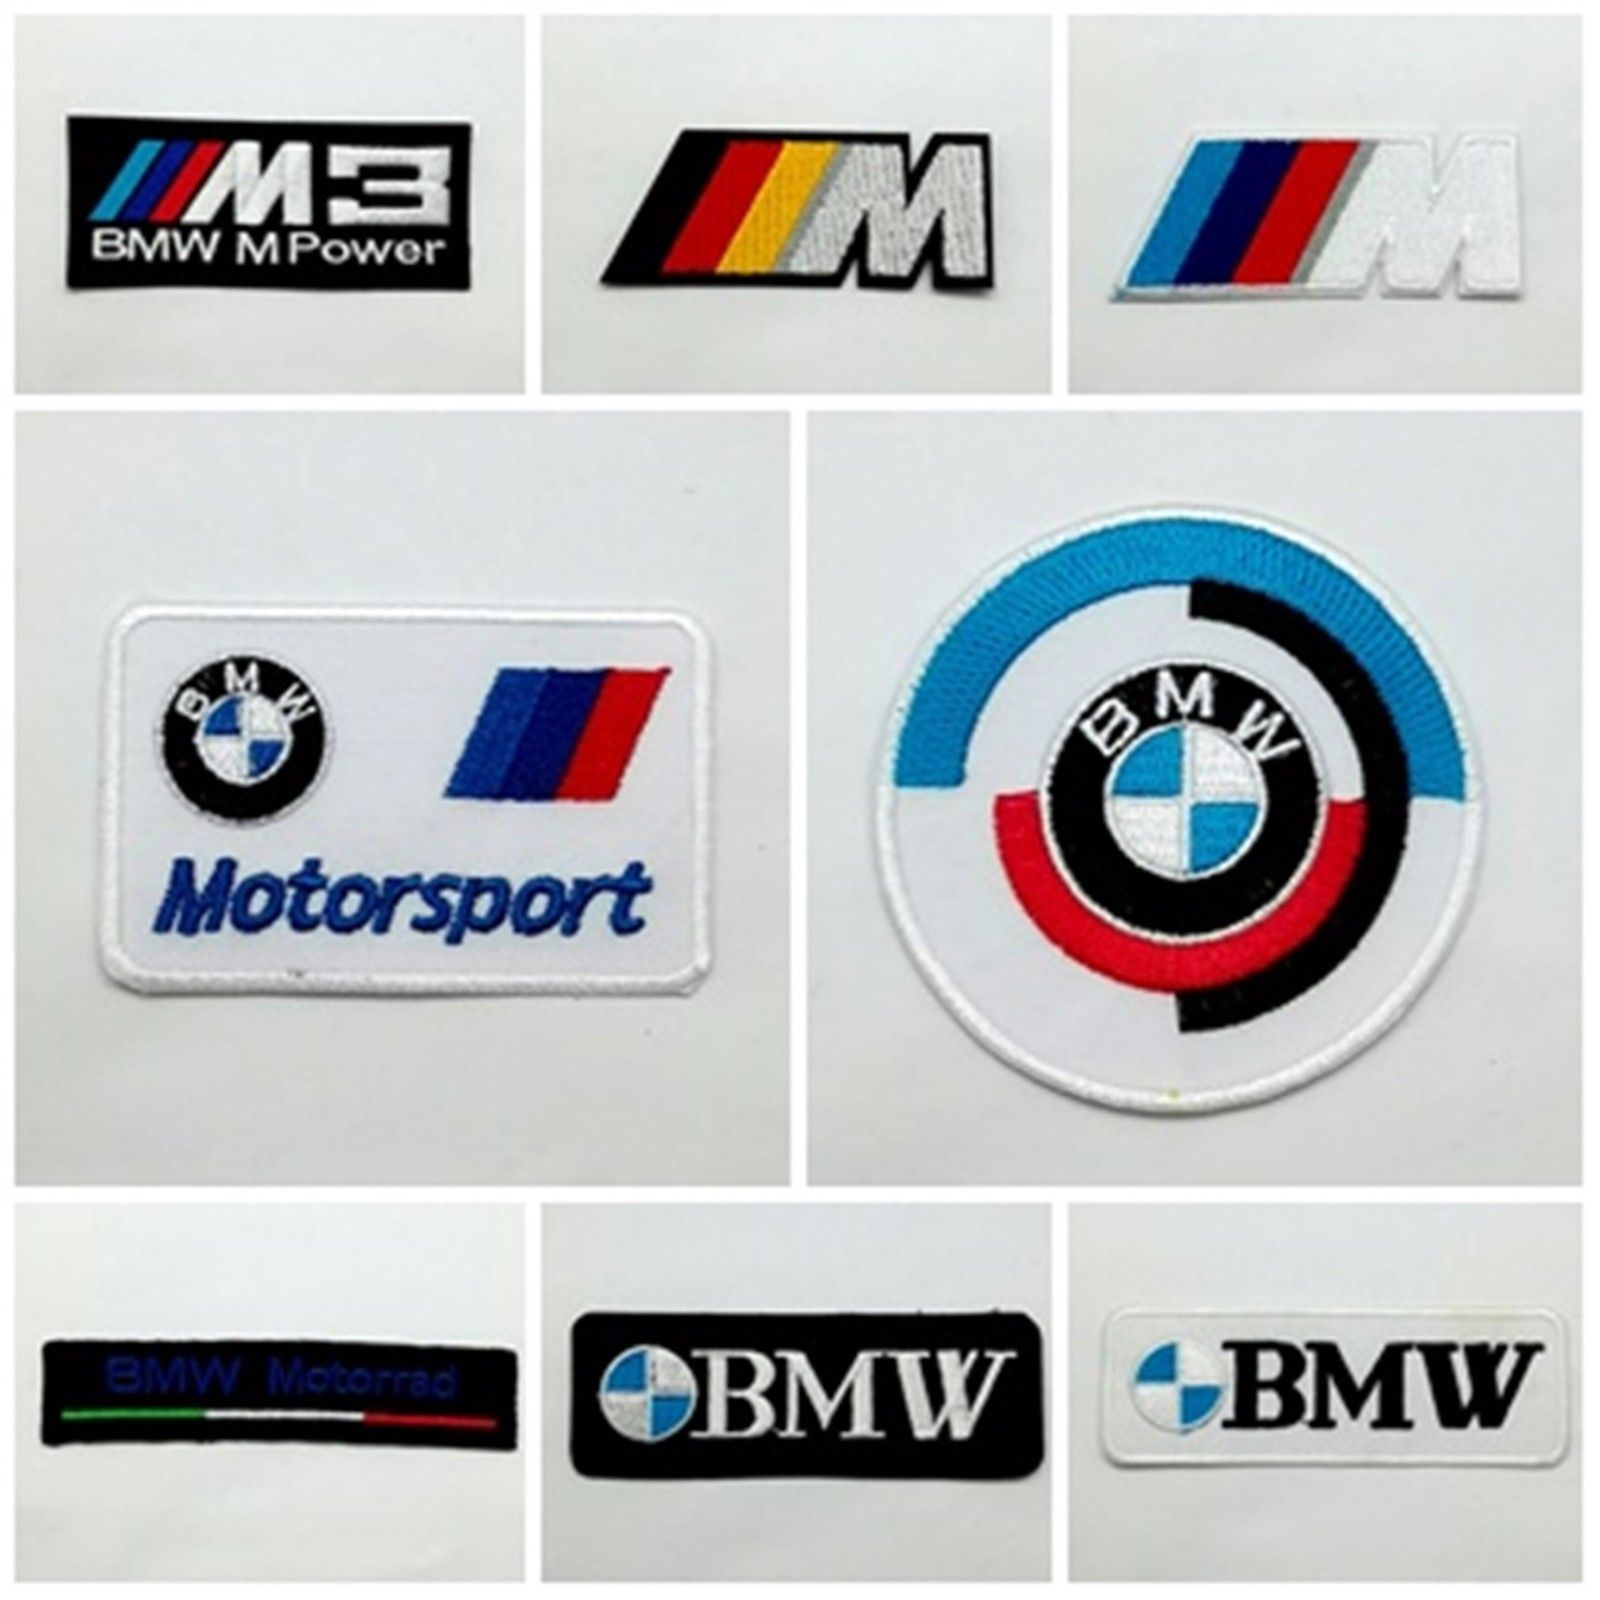 Amazing new bmw m3 m power motorsport motorrad racing car sew iron on patch cap logo diy 2018 2019